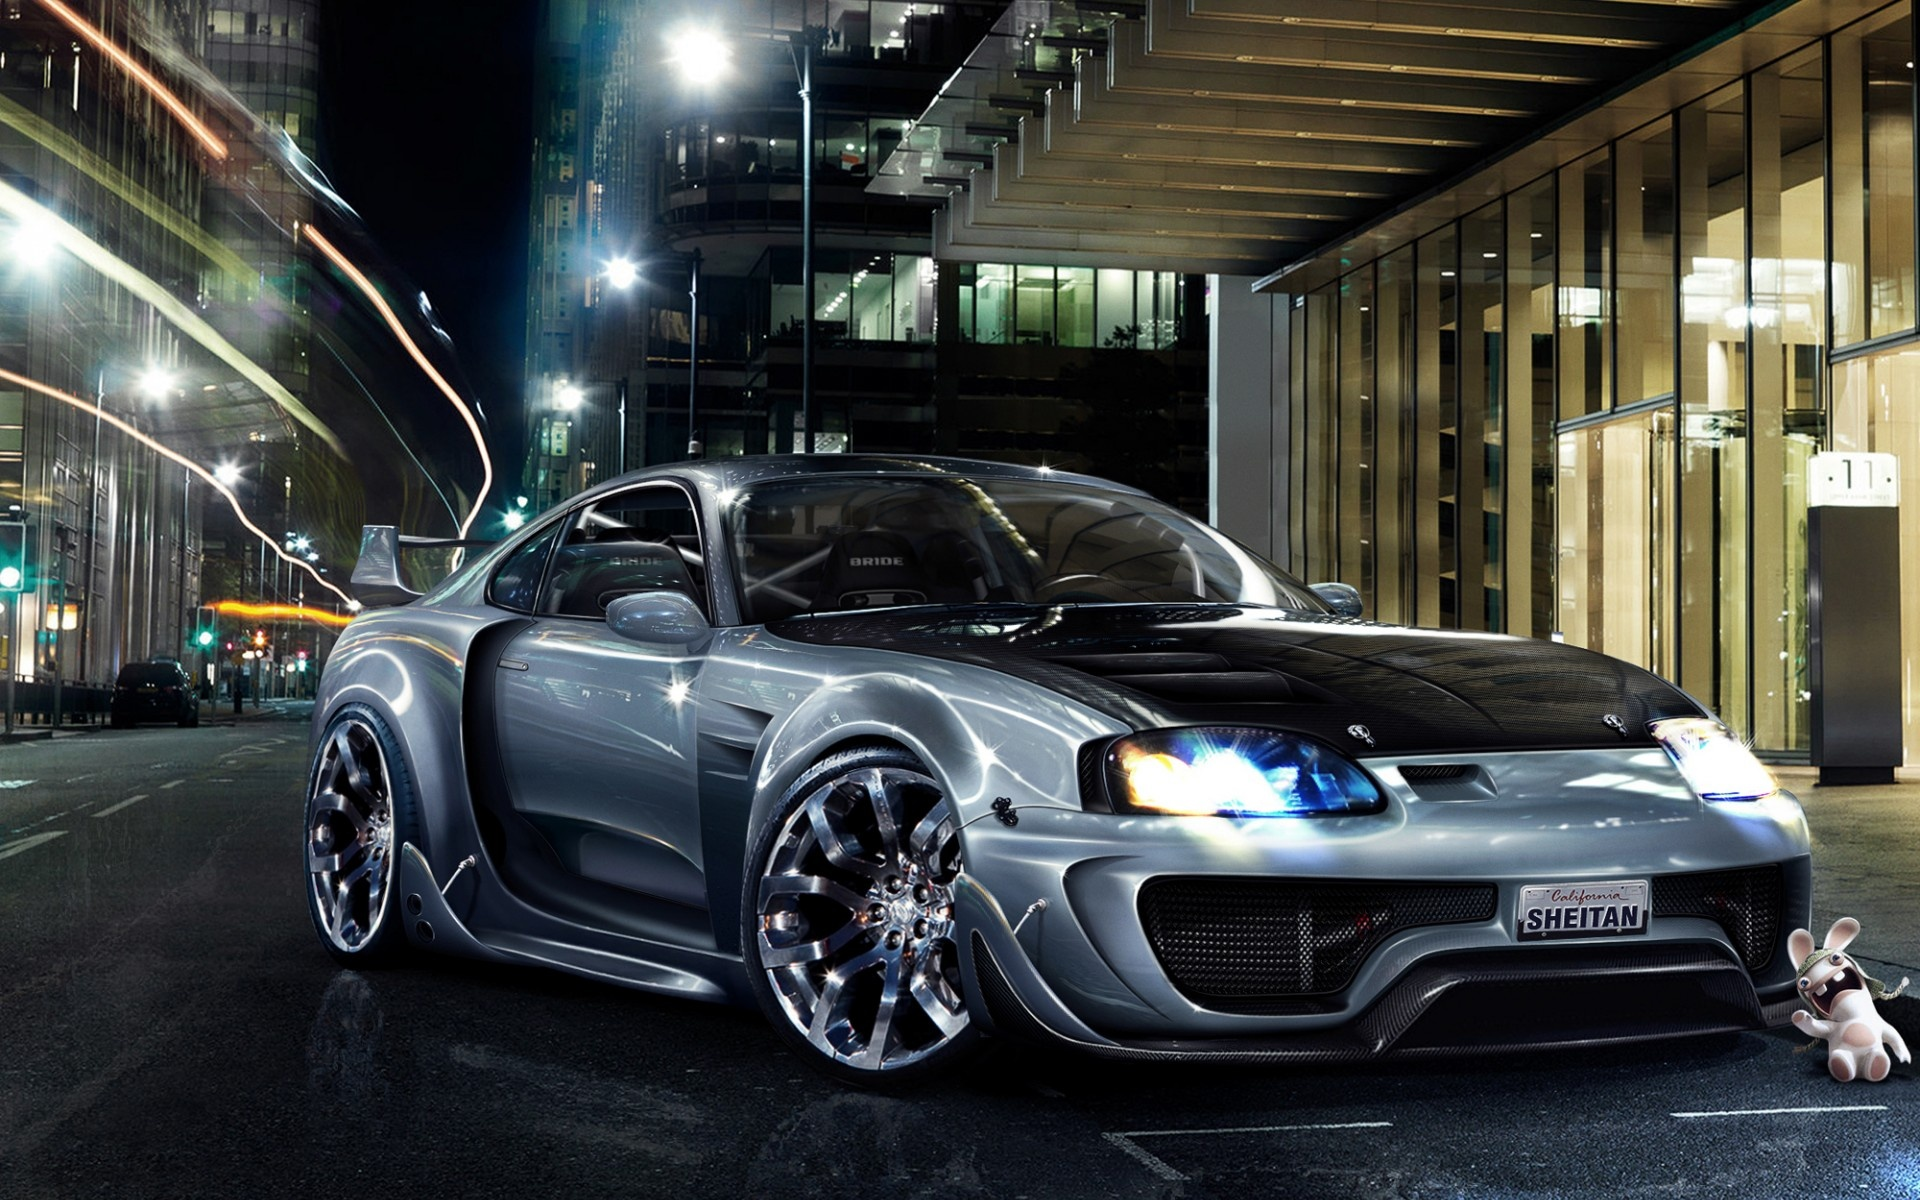 WWW Sports Cars Wallpapers Com